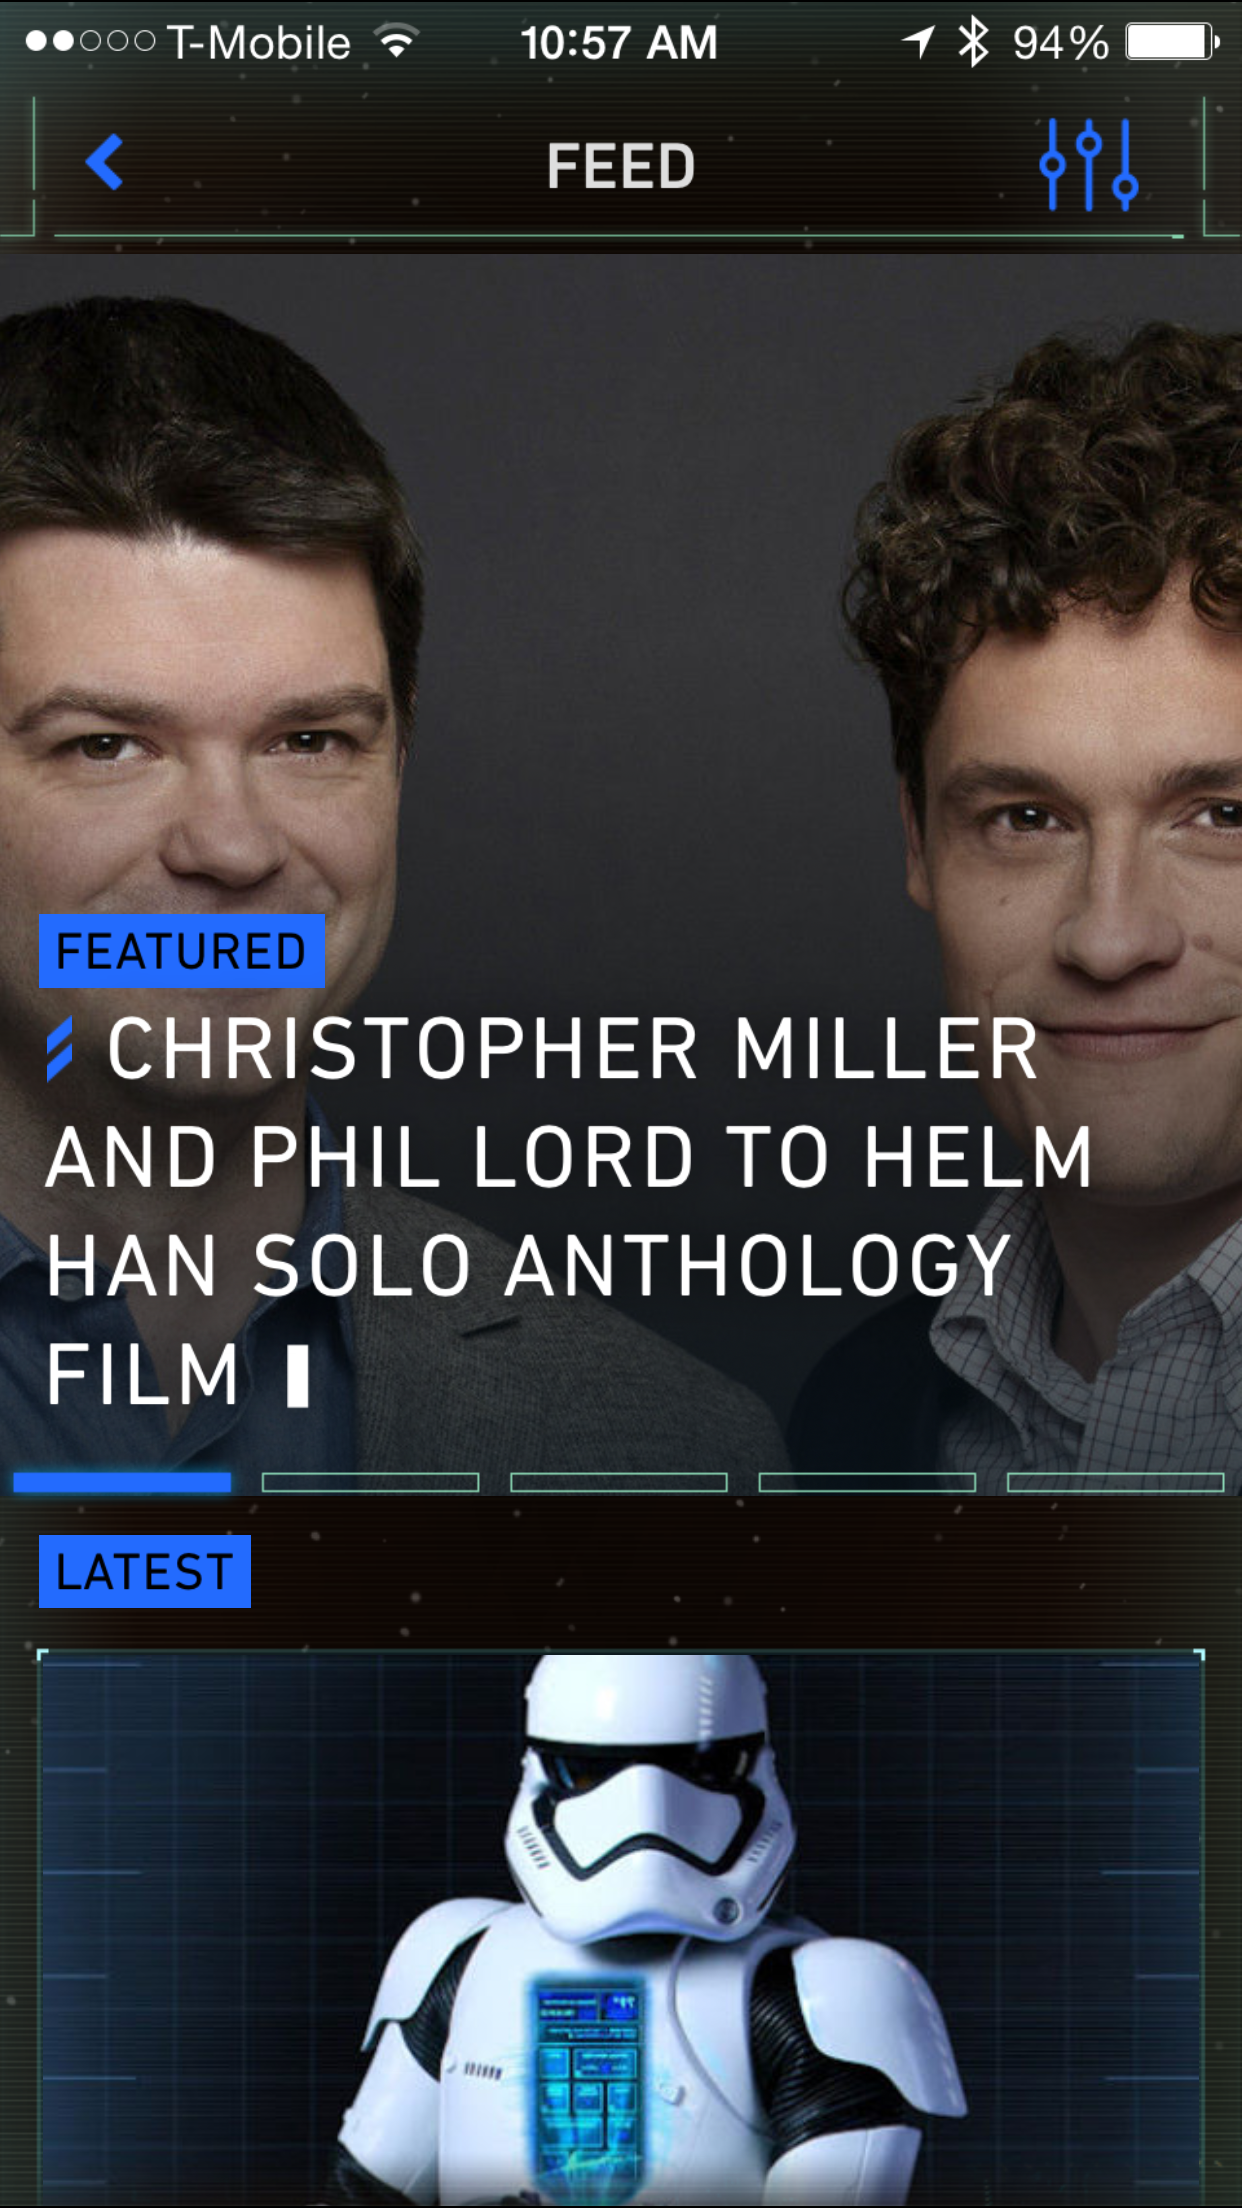 star wars app news img